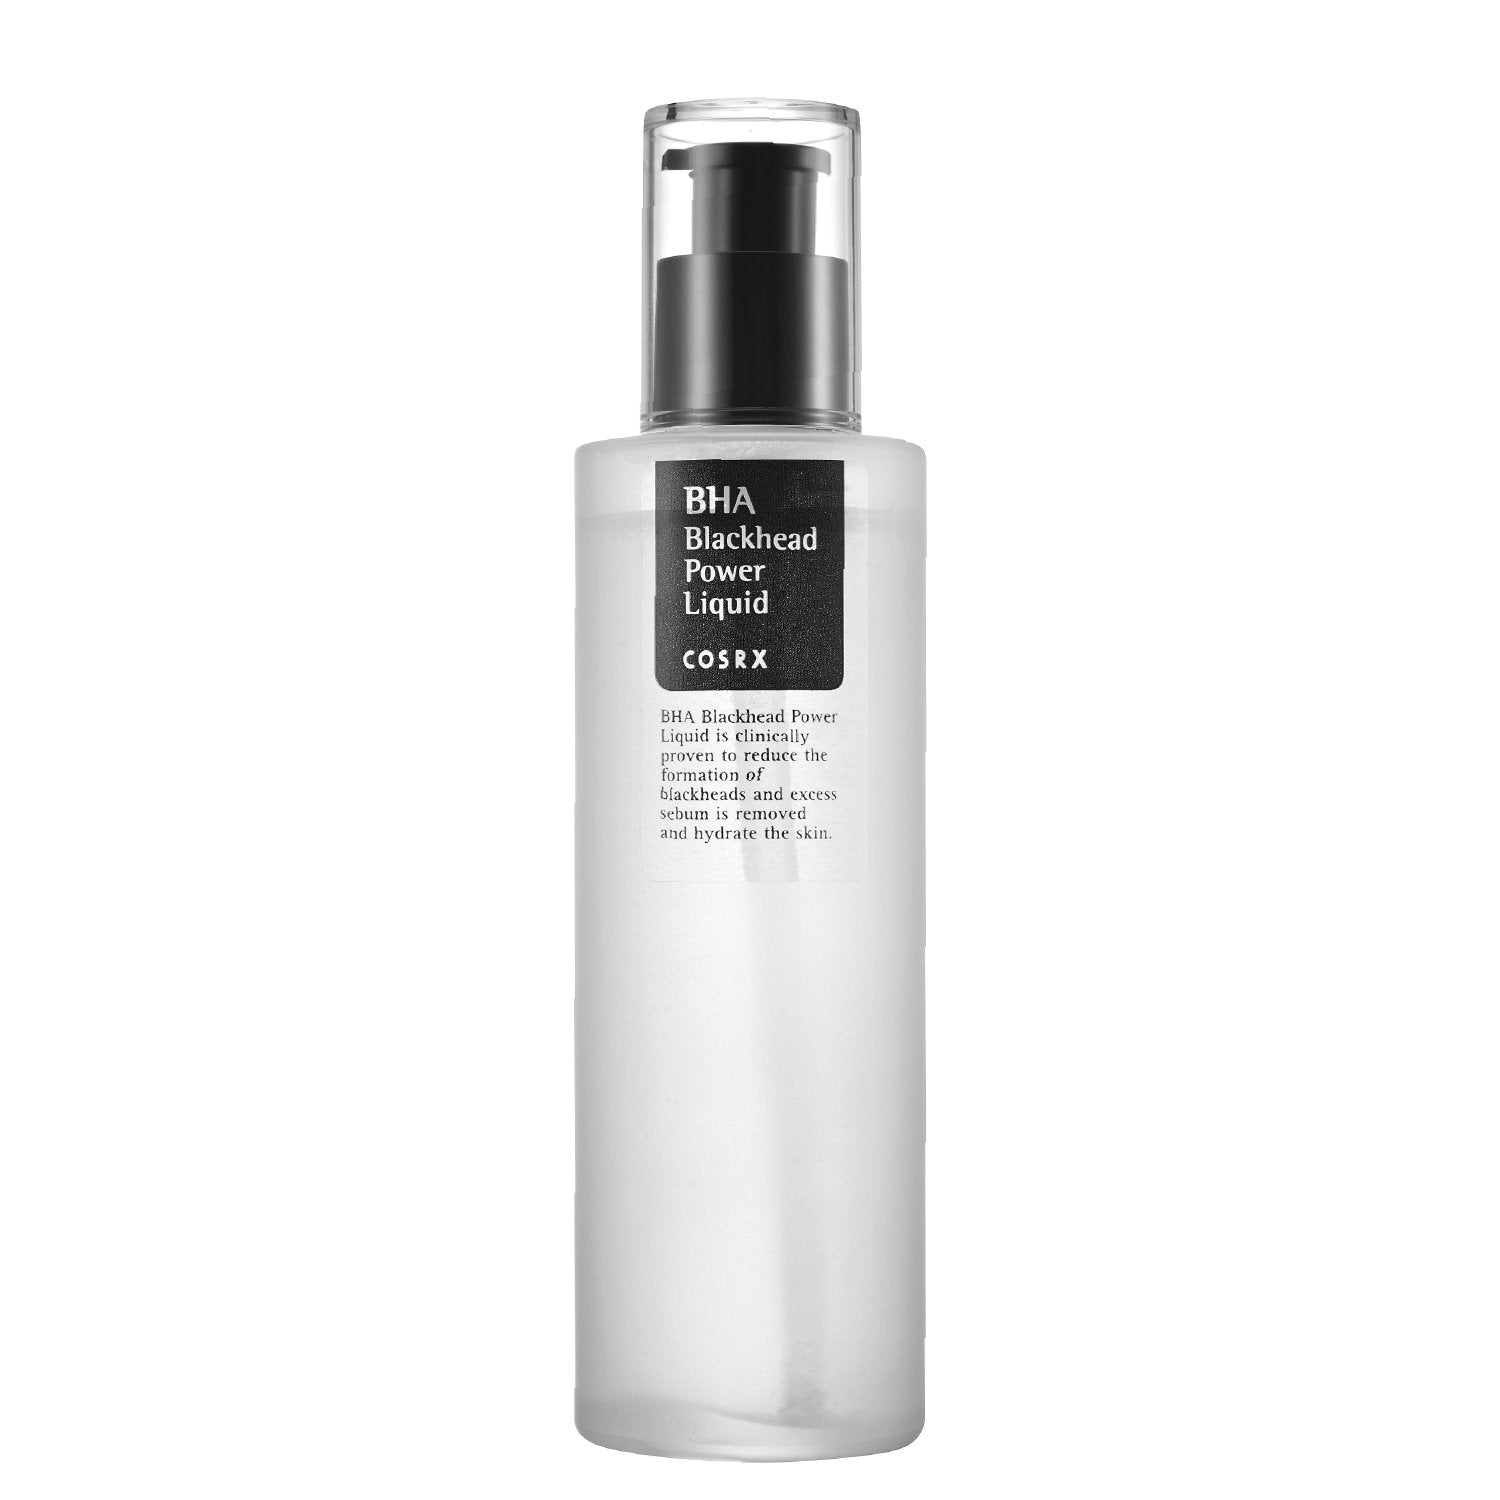 BHA Blackhead Power Liquid (100ml) Toner COSRX